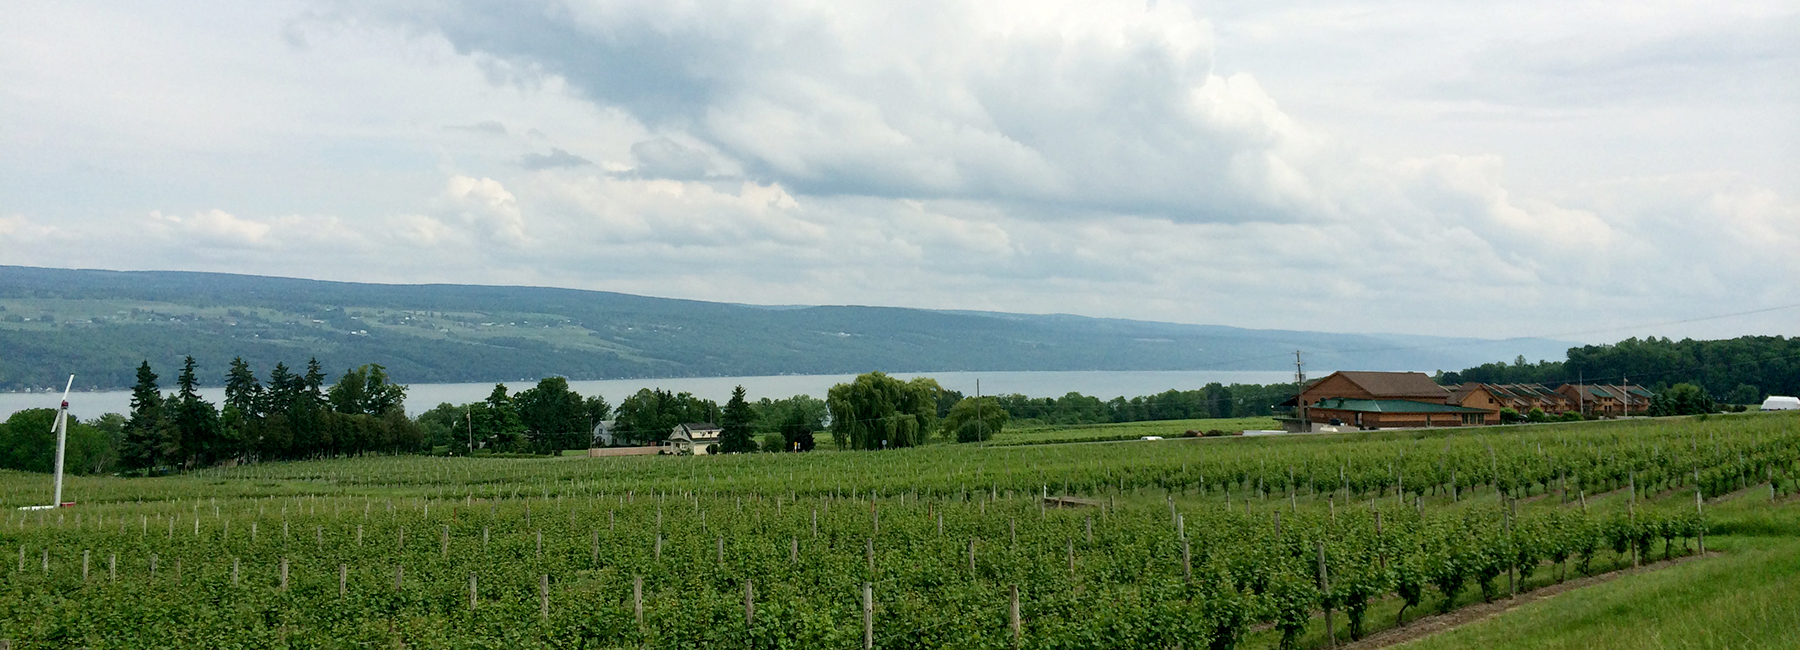 Glenora Vineyards and In on Seneca Lake